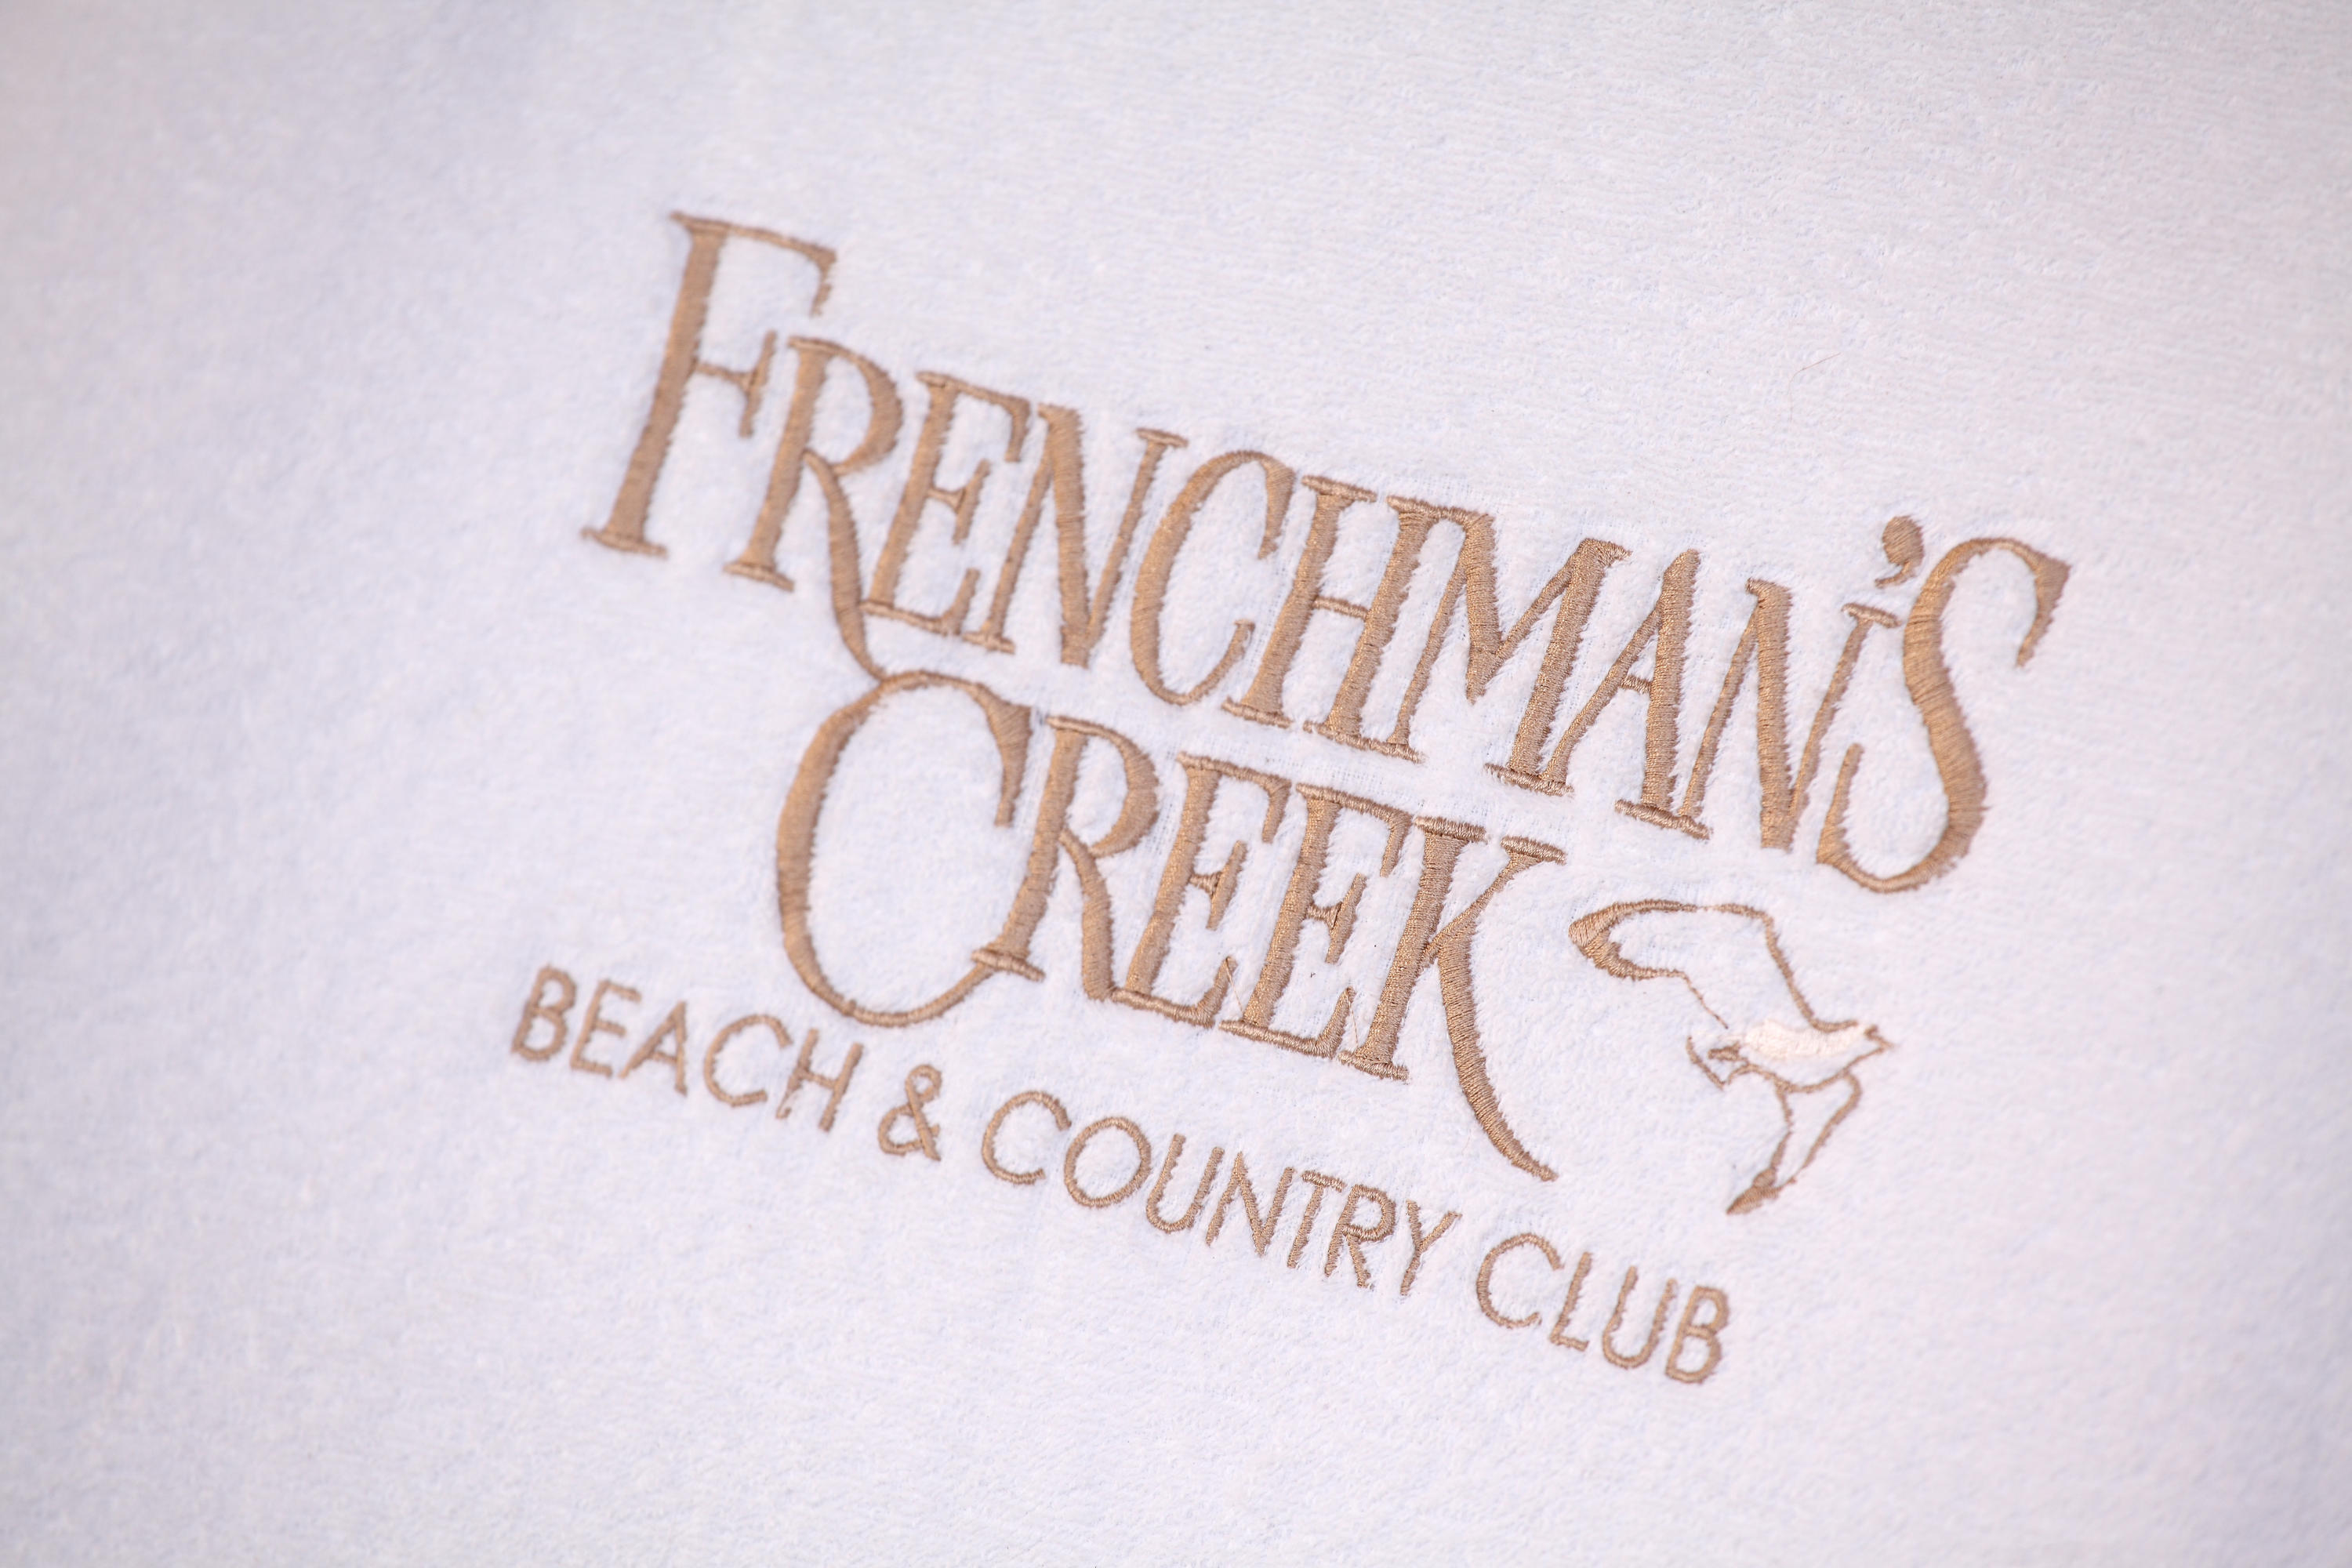 FRENCHMANS CREEK PAR E-2 LT 1